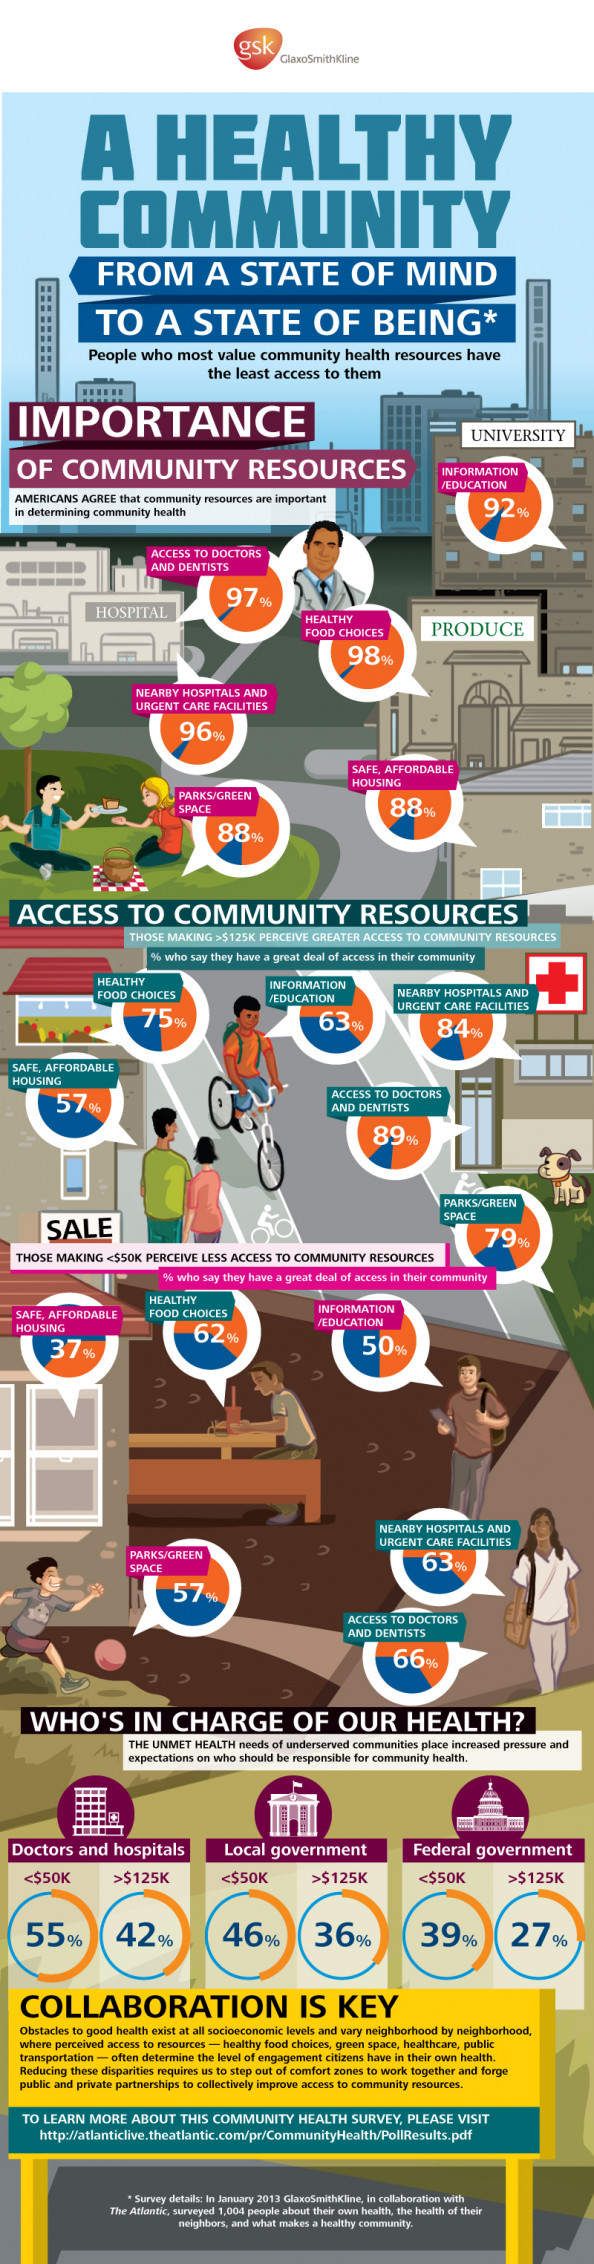 A Healthy Community: from a state of mind to a state of being Infographic